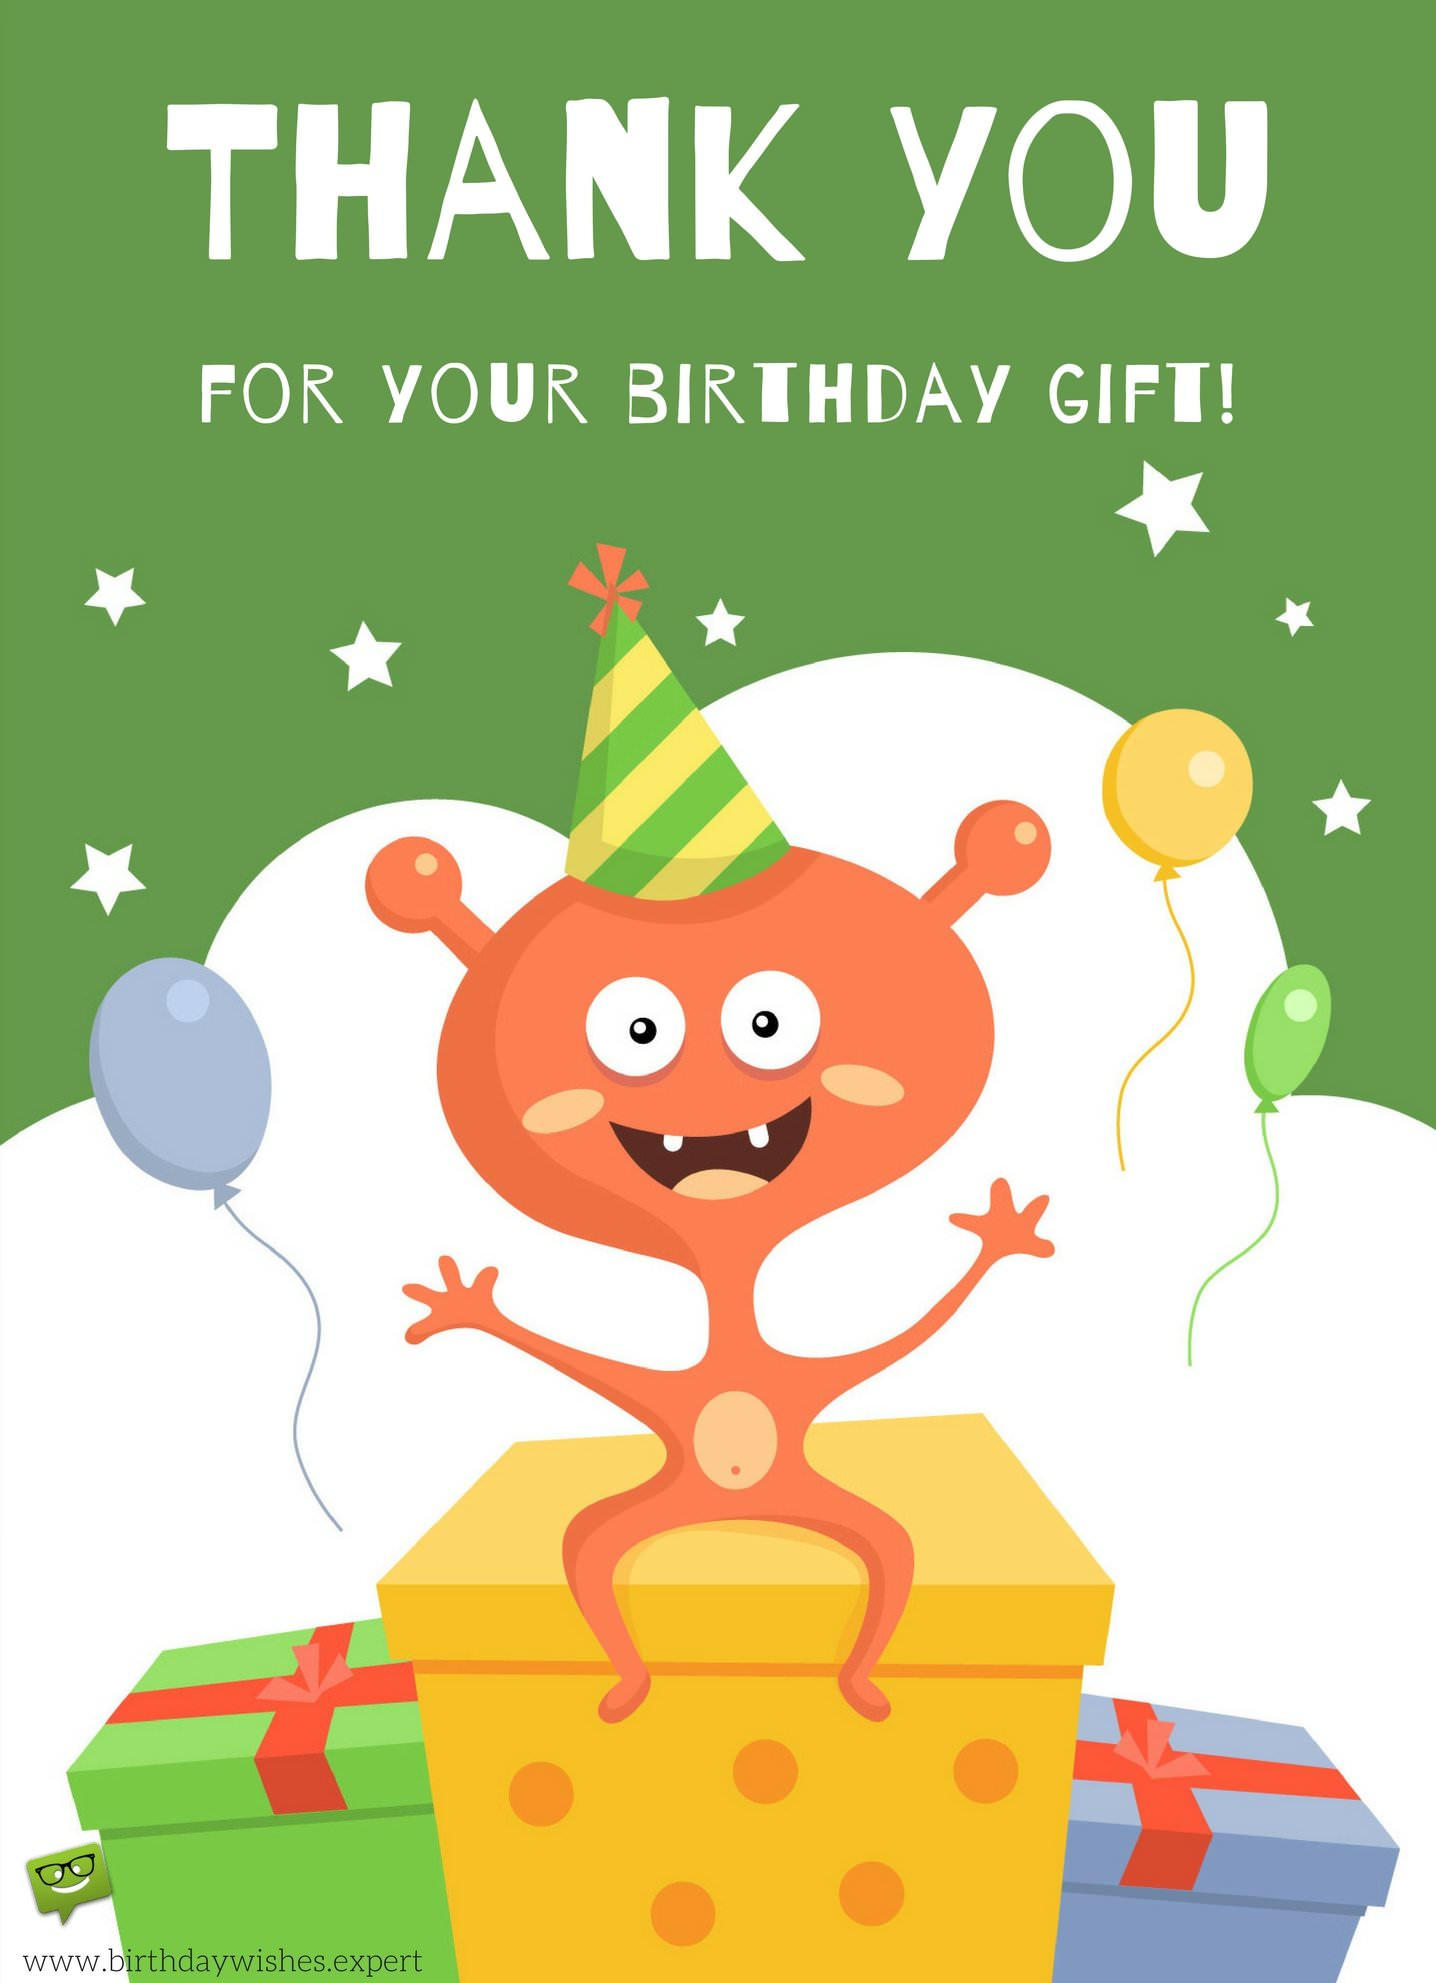 Thank You Notes for Your Birthday – Thank You Cards for Birthday Gift